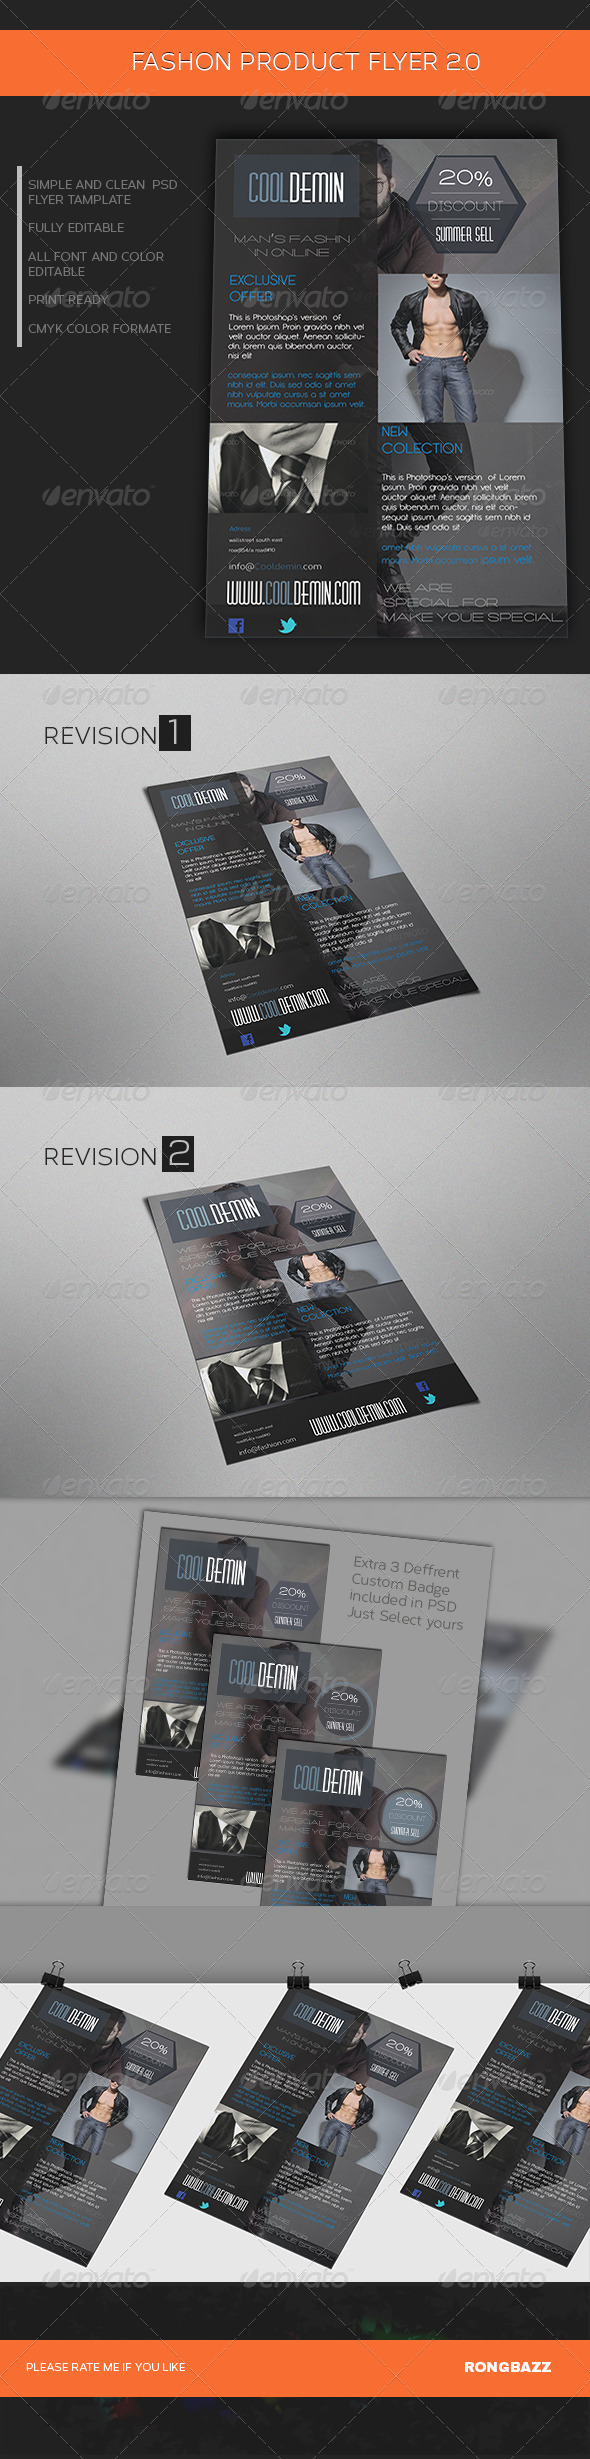 GraphicRiver Man s Fashion Product Flyer Template 2.0 6898777